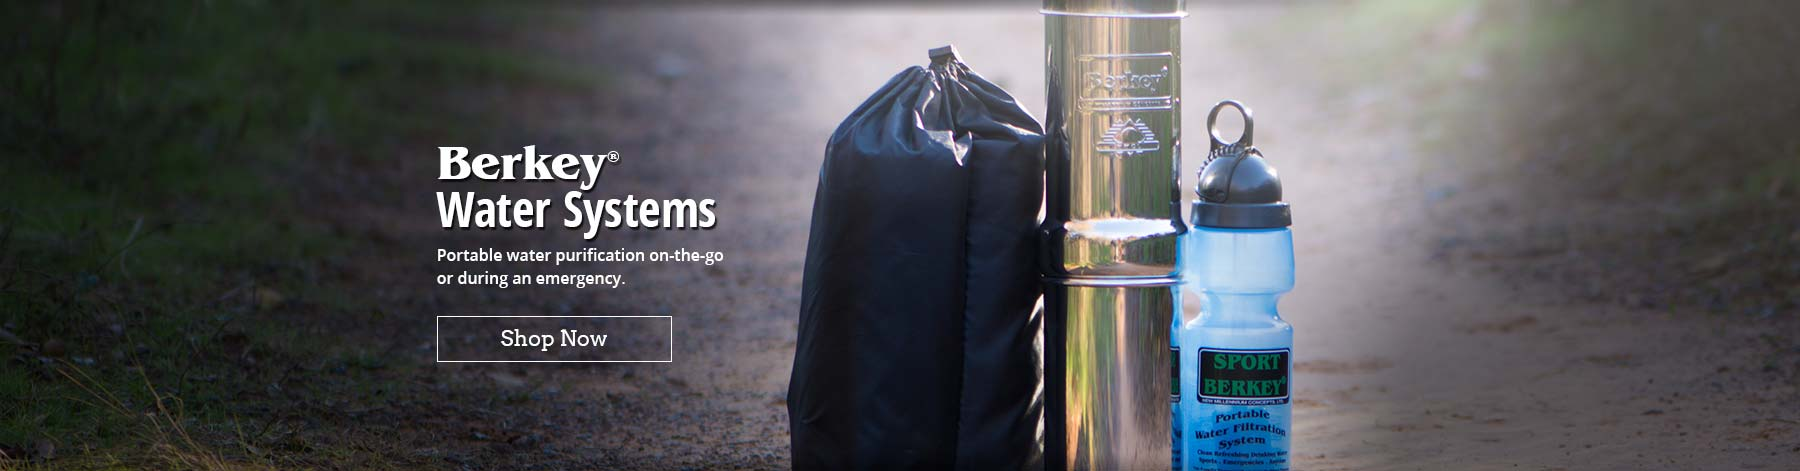 Berkey Water Systems - Portable water purification on-the-go or during an emergency.